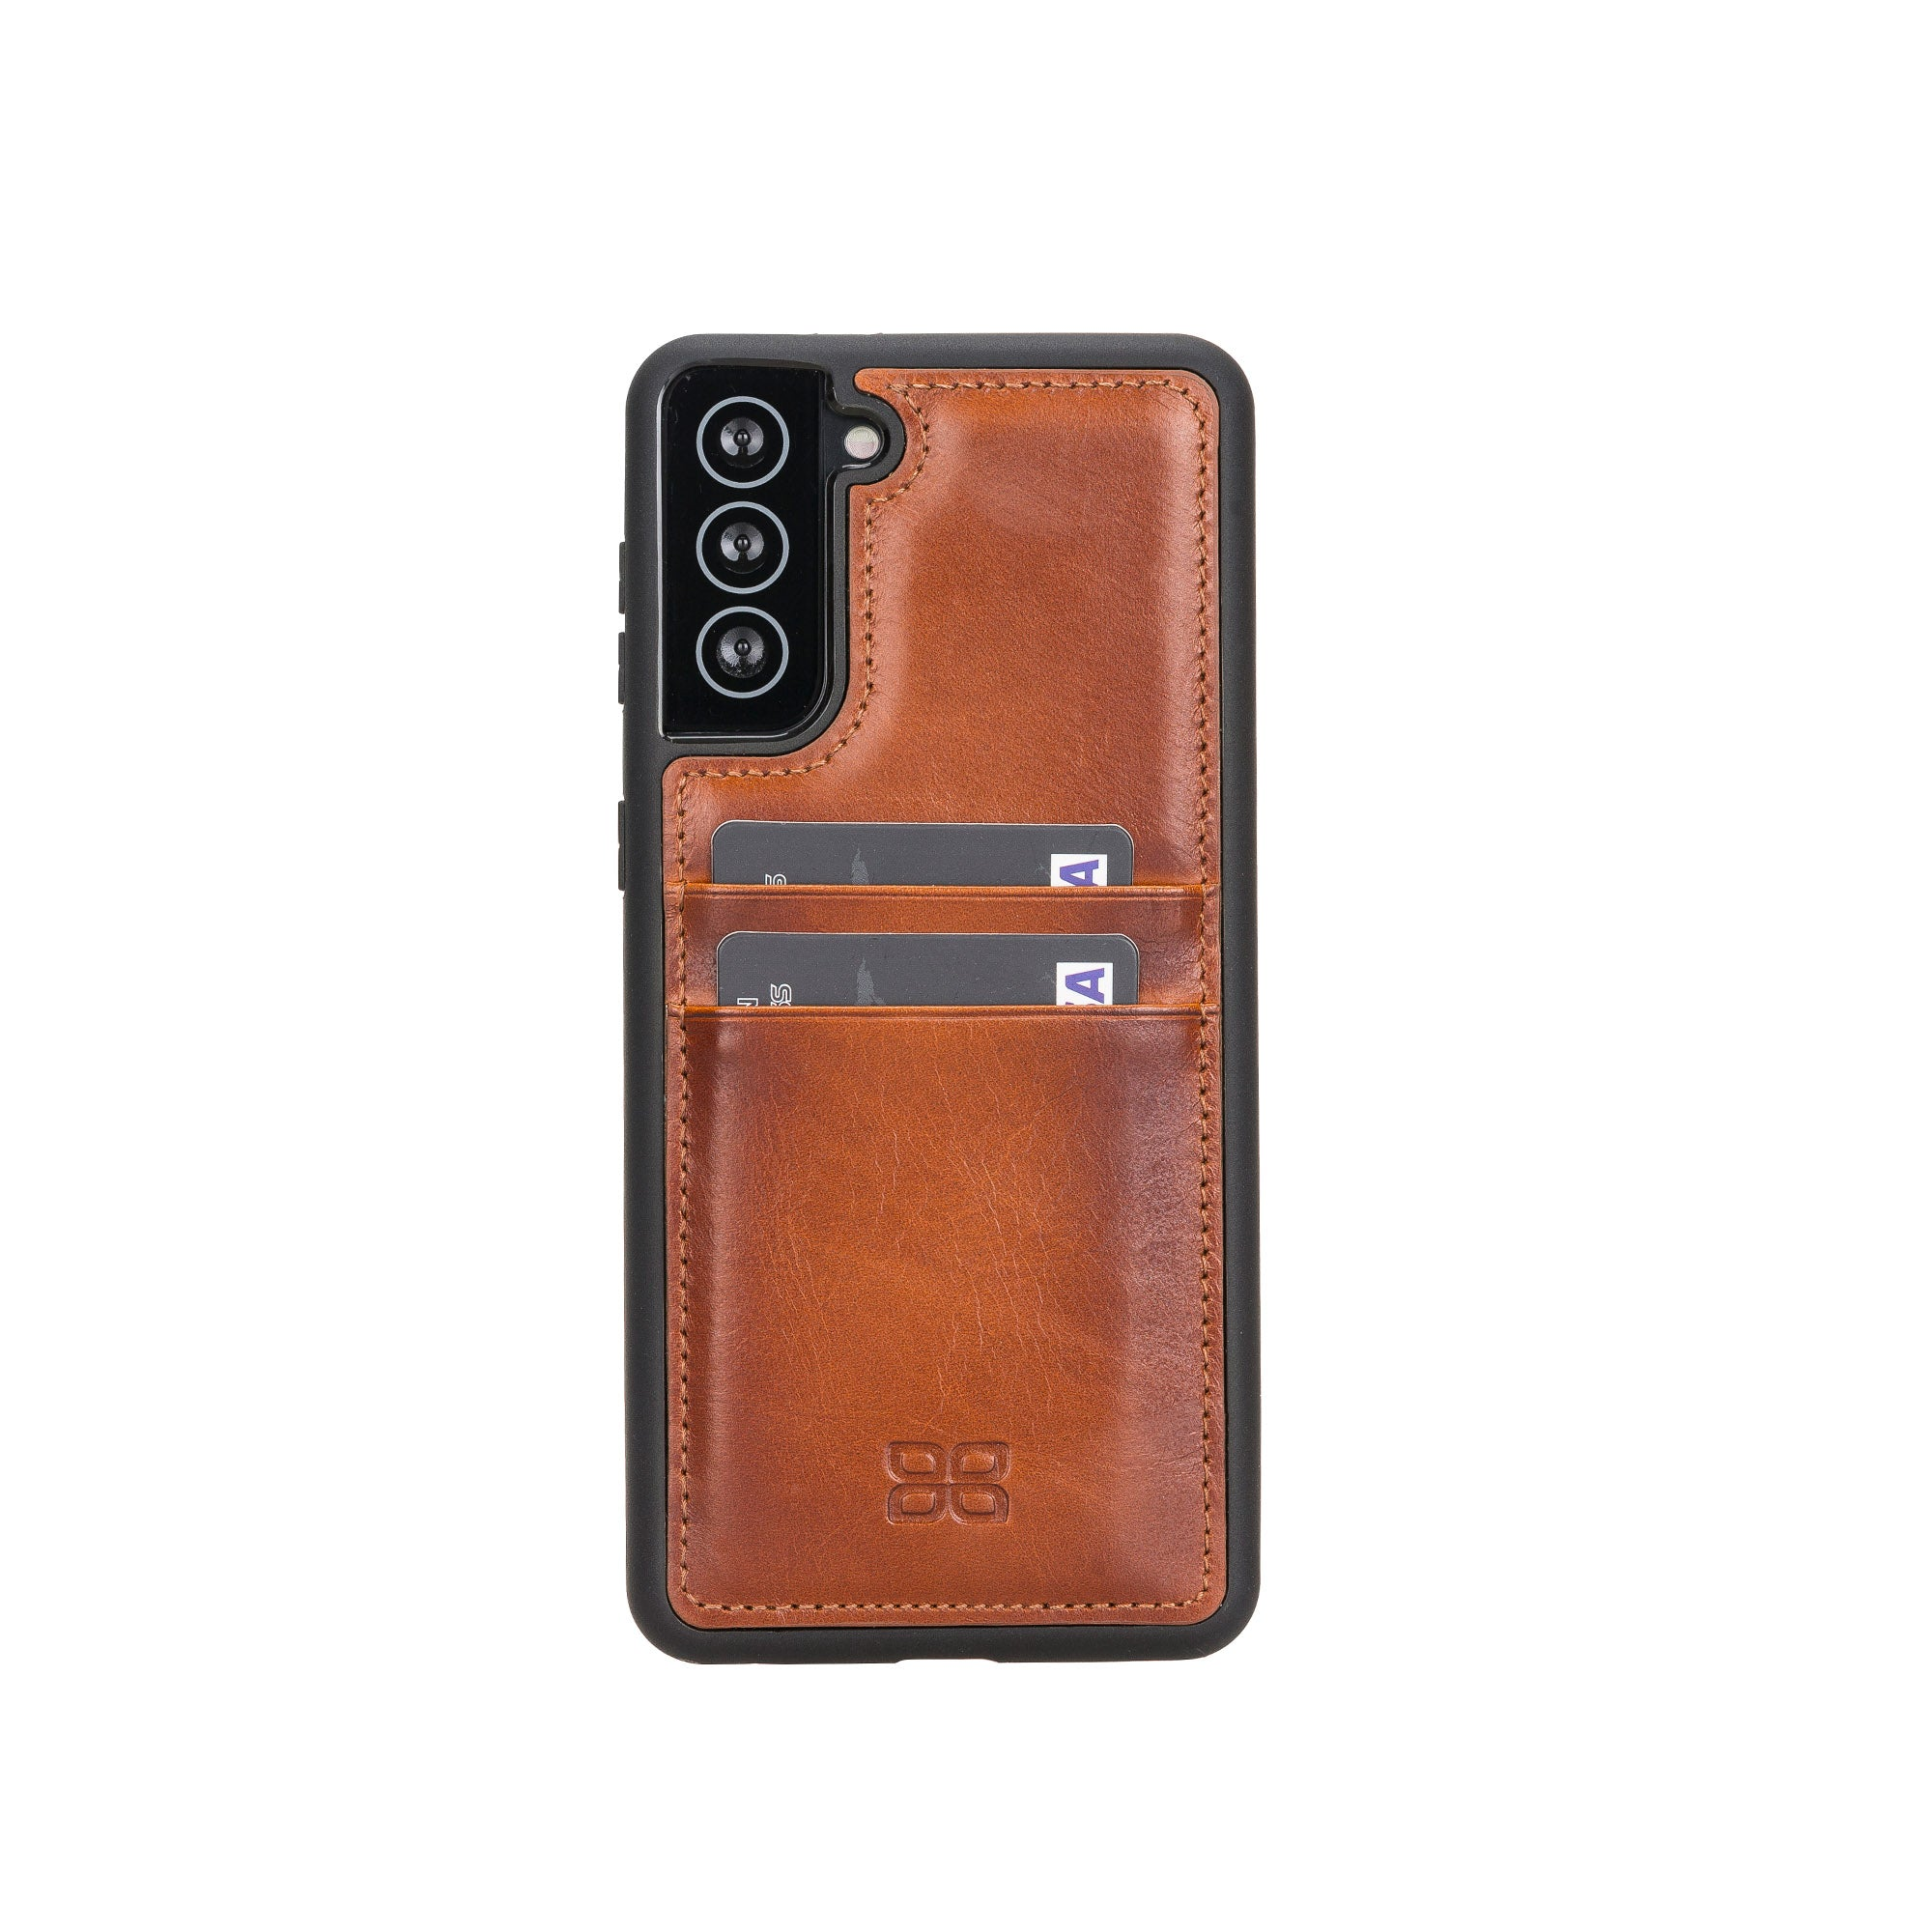 "Flex Cover Leather Back Case with Card Holder for Samsung Galaxy S21 5G (6.2"") - EFFECT BROWN - saracleather"